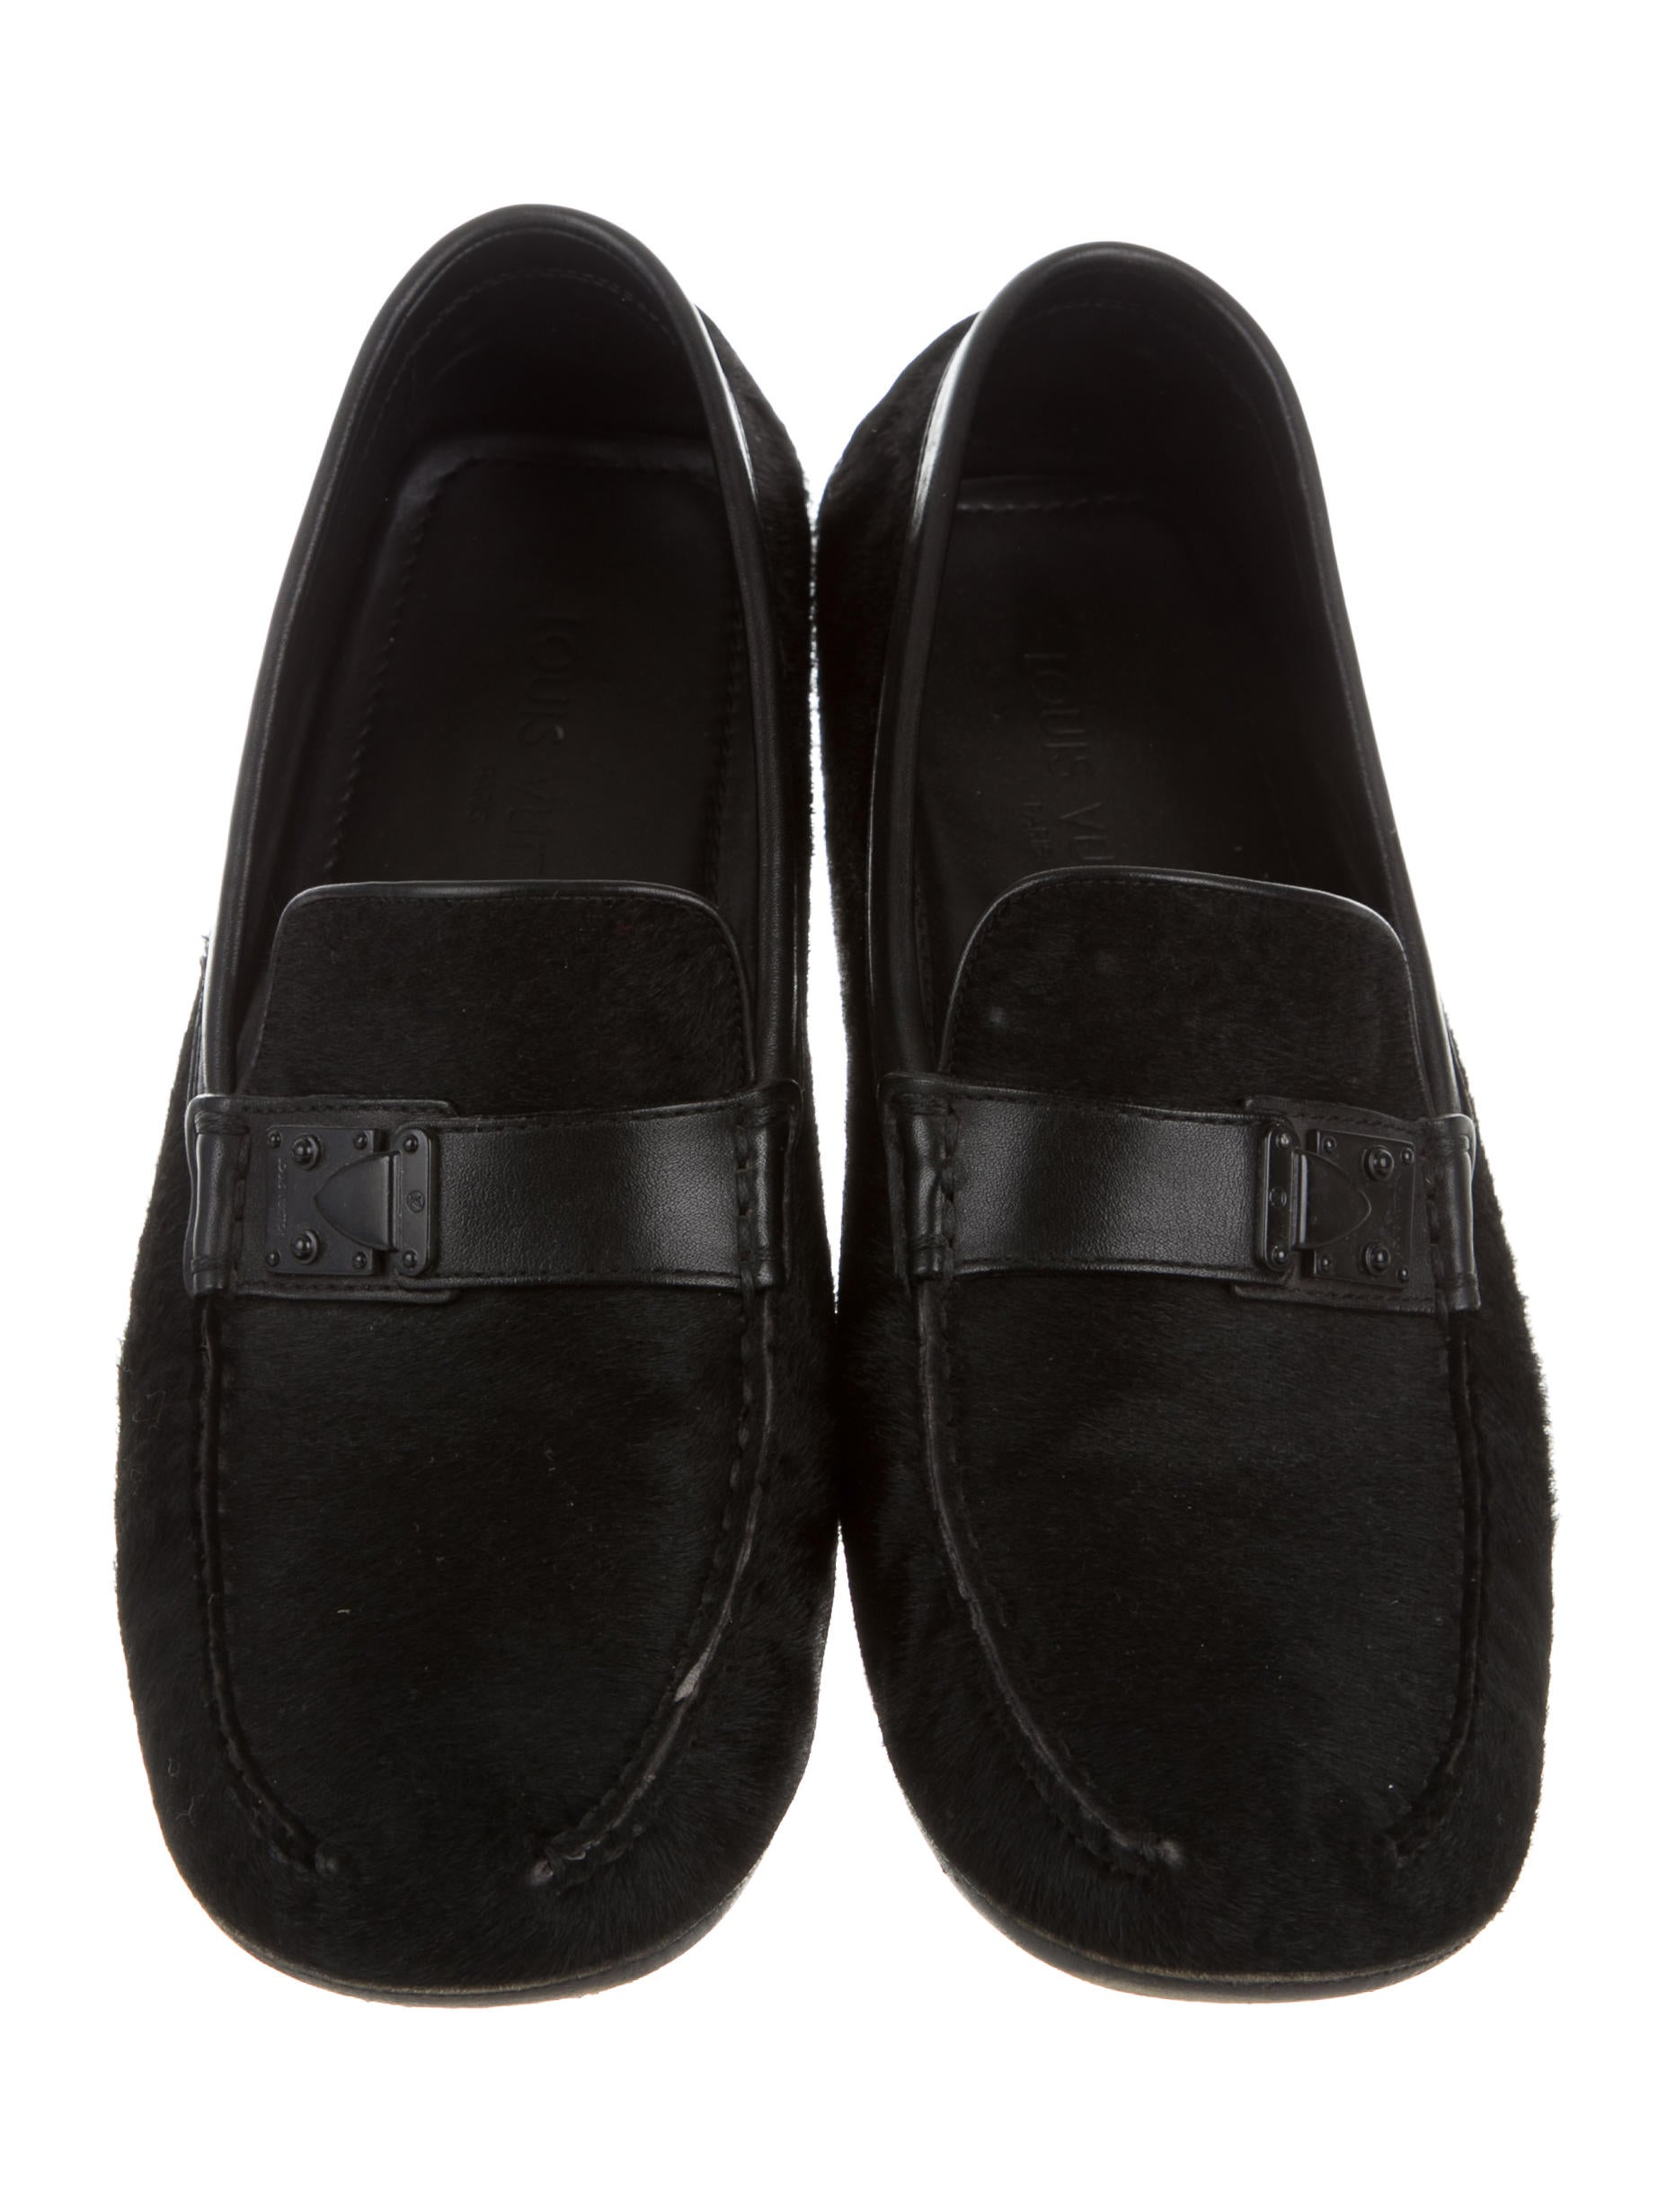 Aug 24,  · I want to match these blue suede driving loafers with a belt. I was thinking of matching it with a blue braided belt later on when I have more funds to go shopping again. In the meantime, I have a chocolate suede belt.